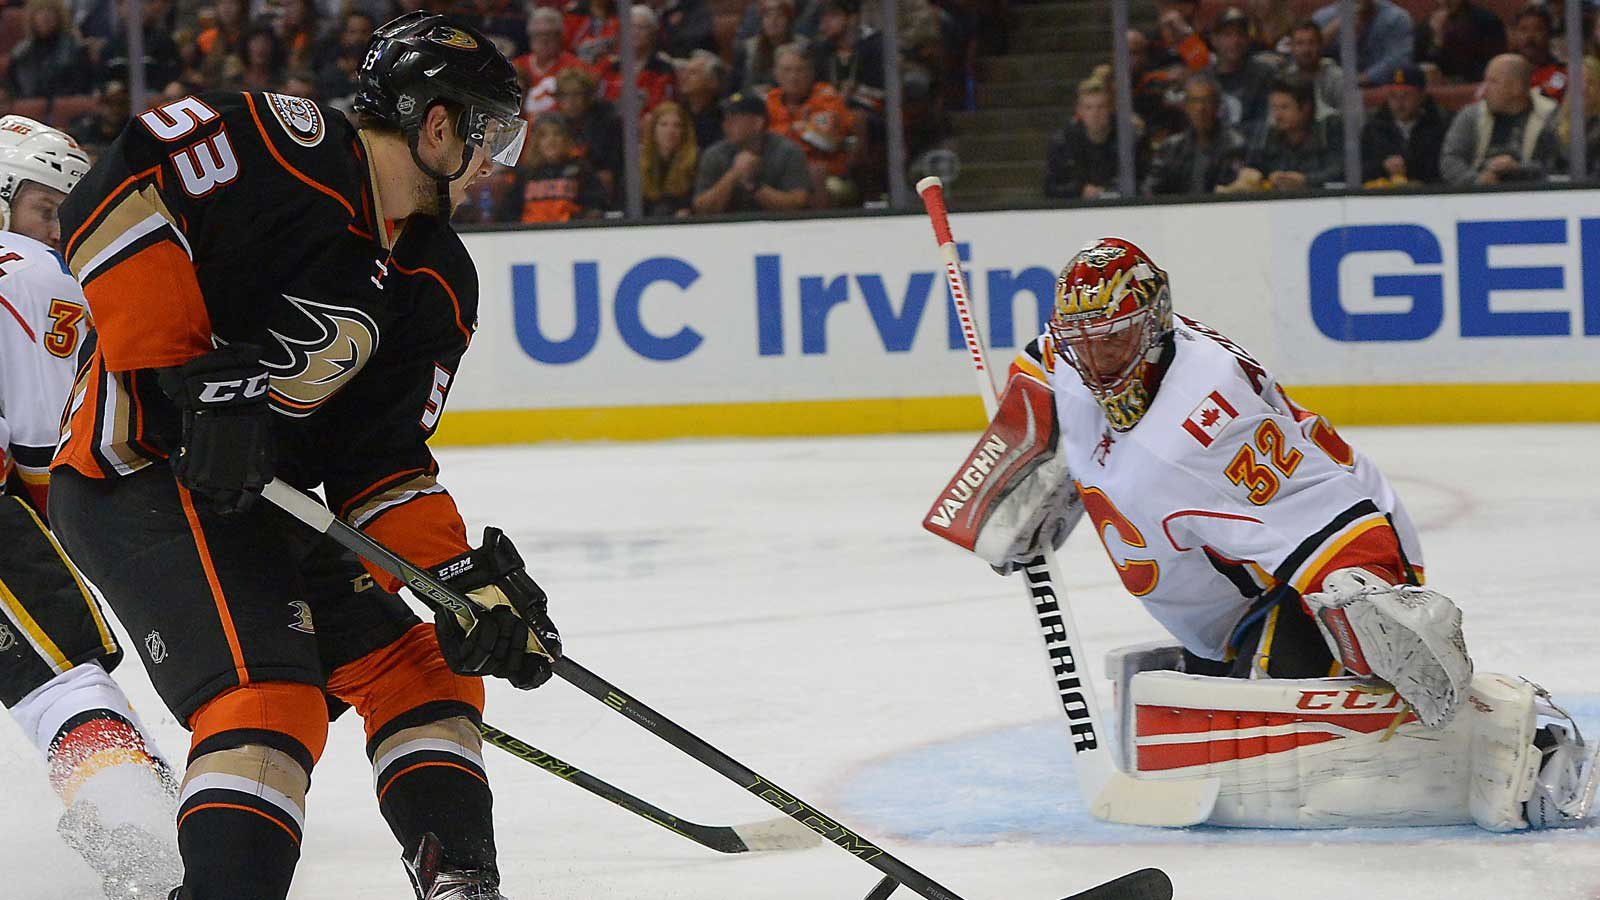 Kesler and Silfverberg lead Ducks over Flames 8-3